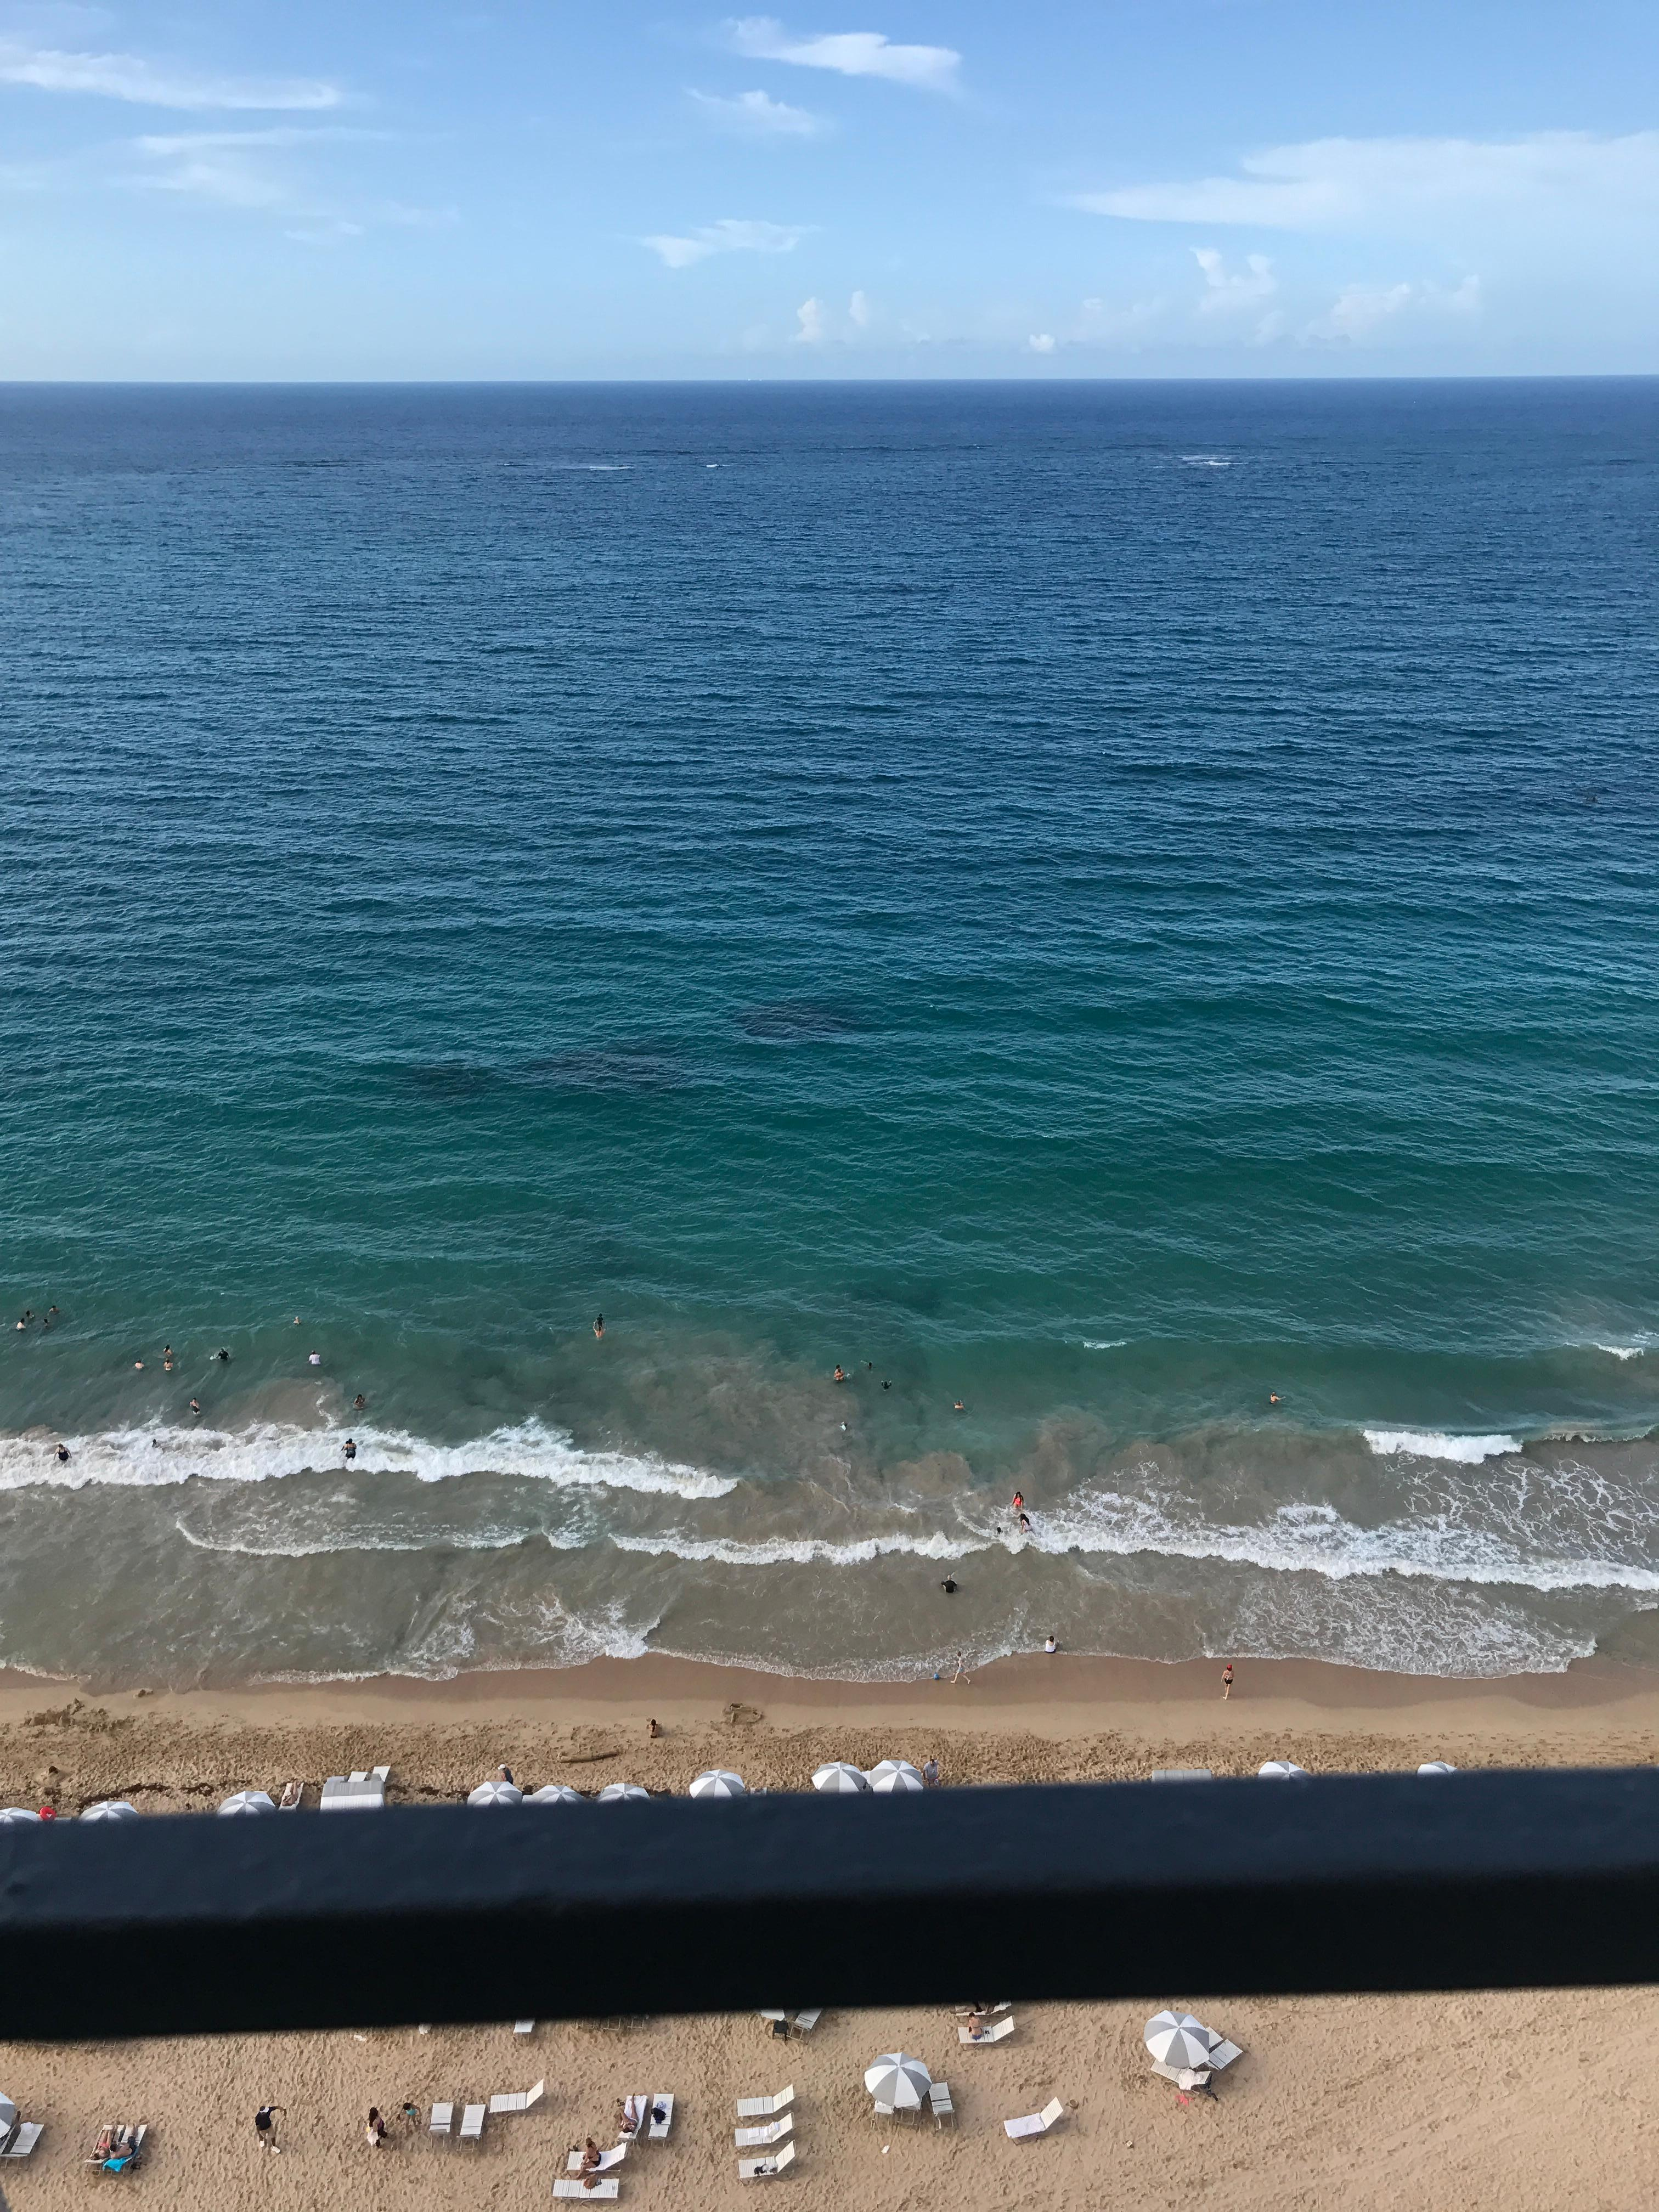 From our ocean front balcony